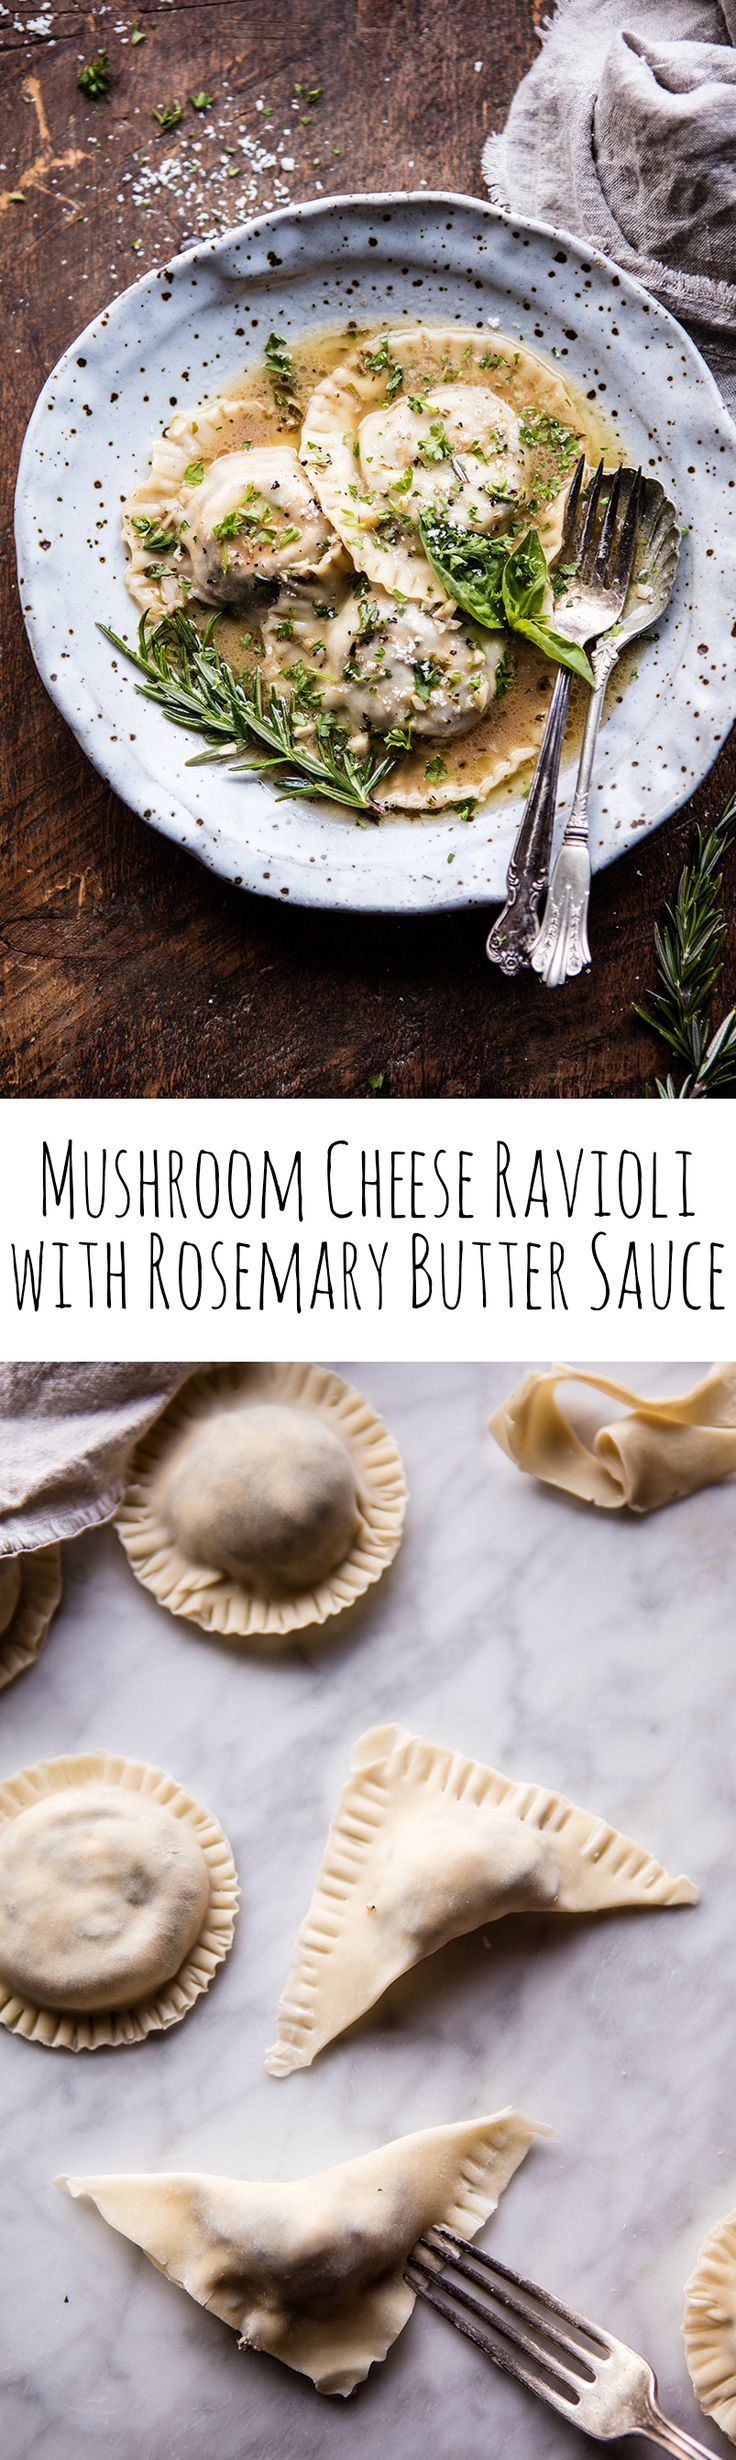 Mushroom Cheese Ravioli with Rosemary Butter Sauce | http://halfbakedharvest.com /hbharvest/